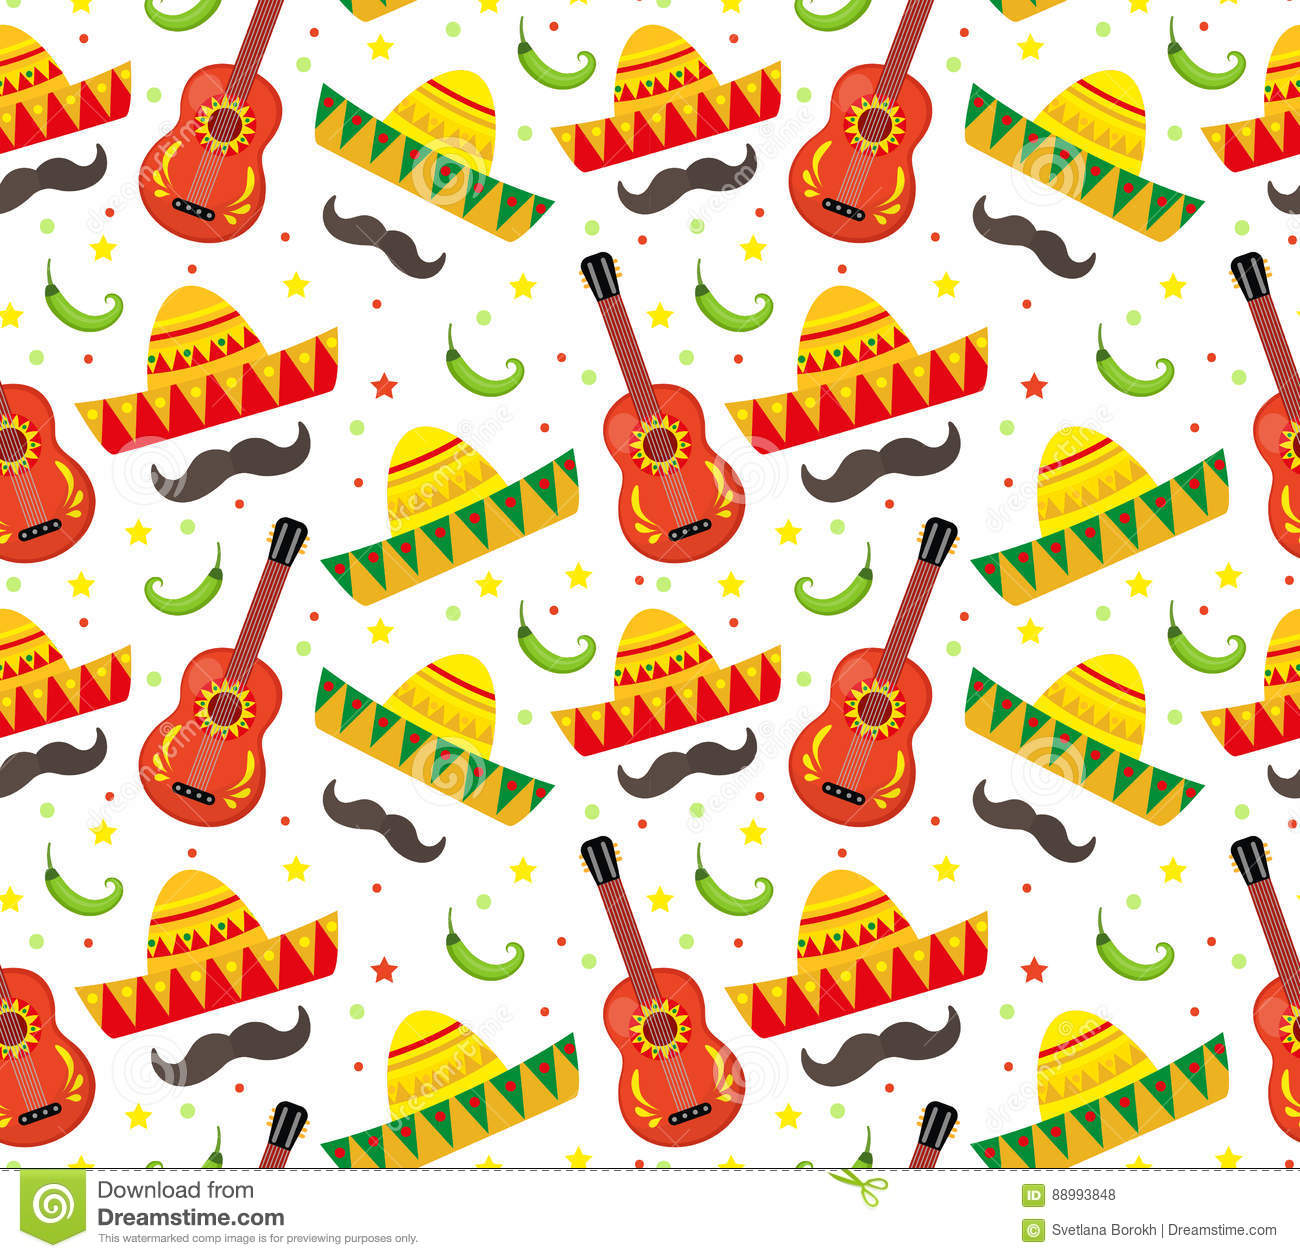 Cinco de mayo vector seamless pattern stock vector illustration cinco de mayo seamless pattern mexican holiday endless background texture vector illustration kristyandbryce Gallery